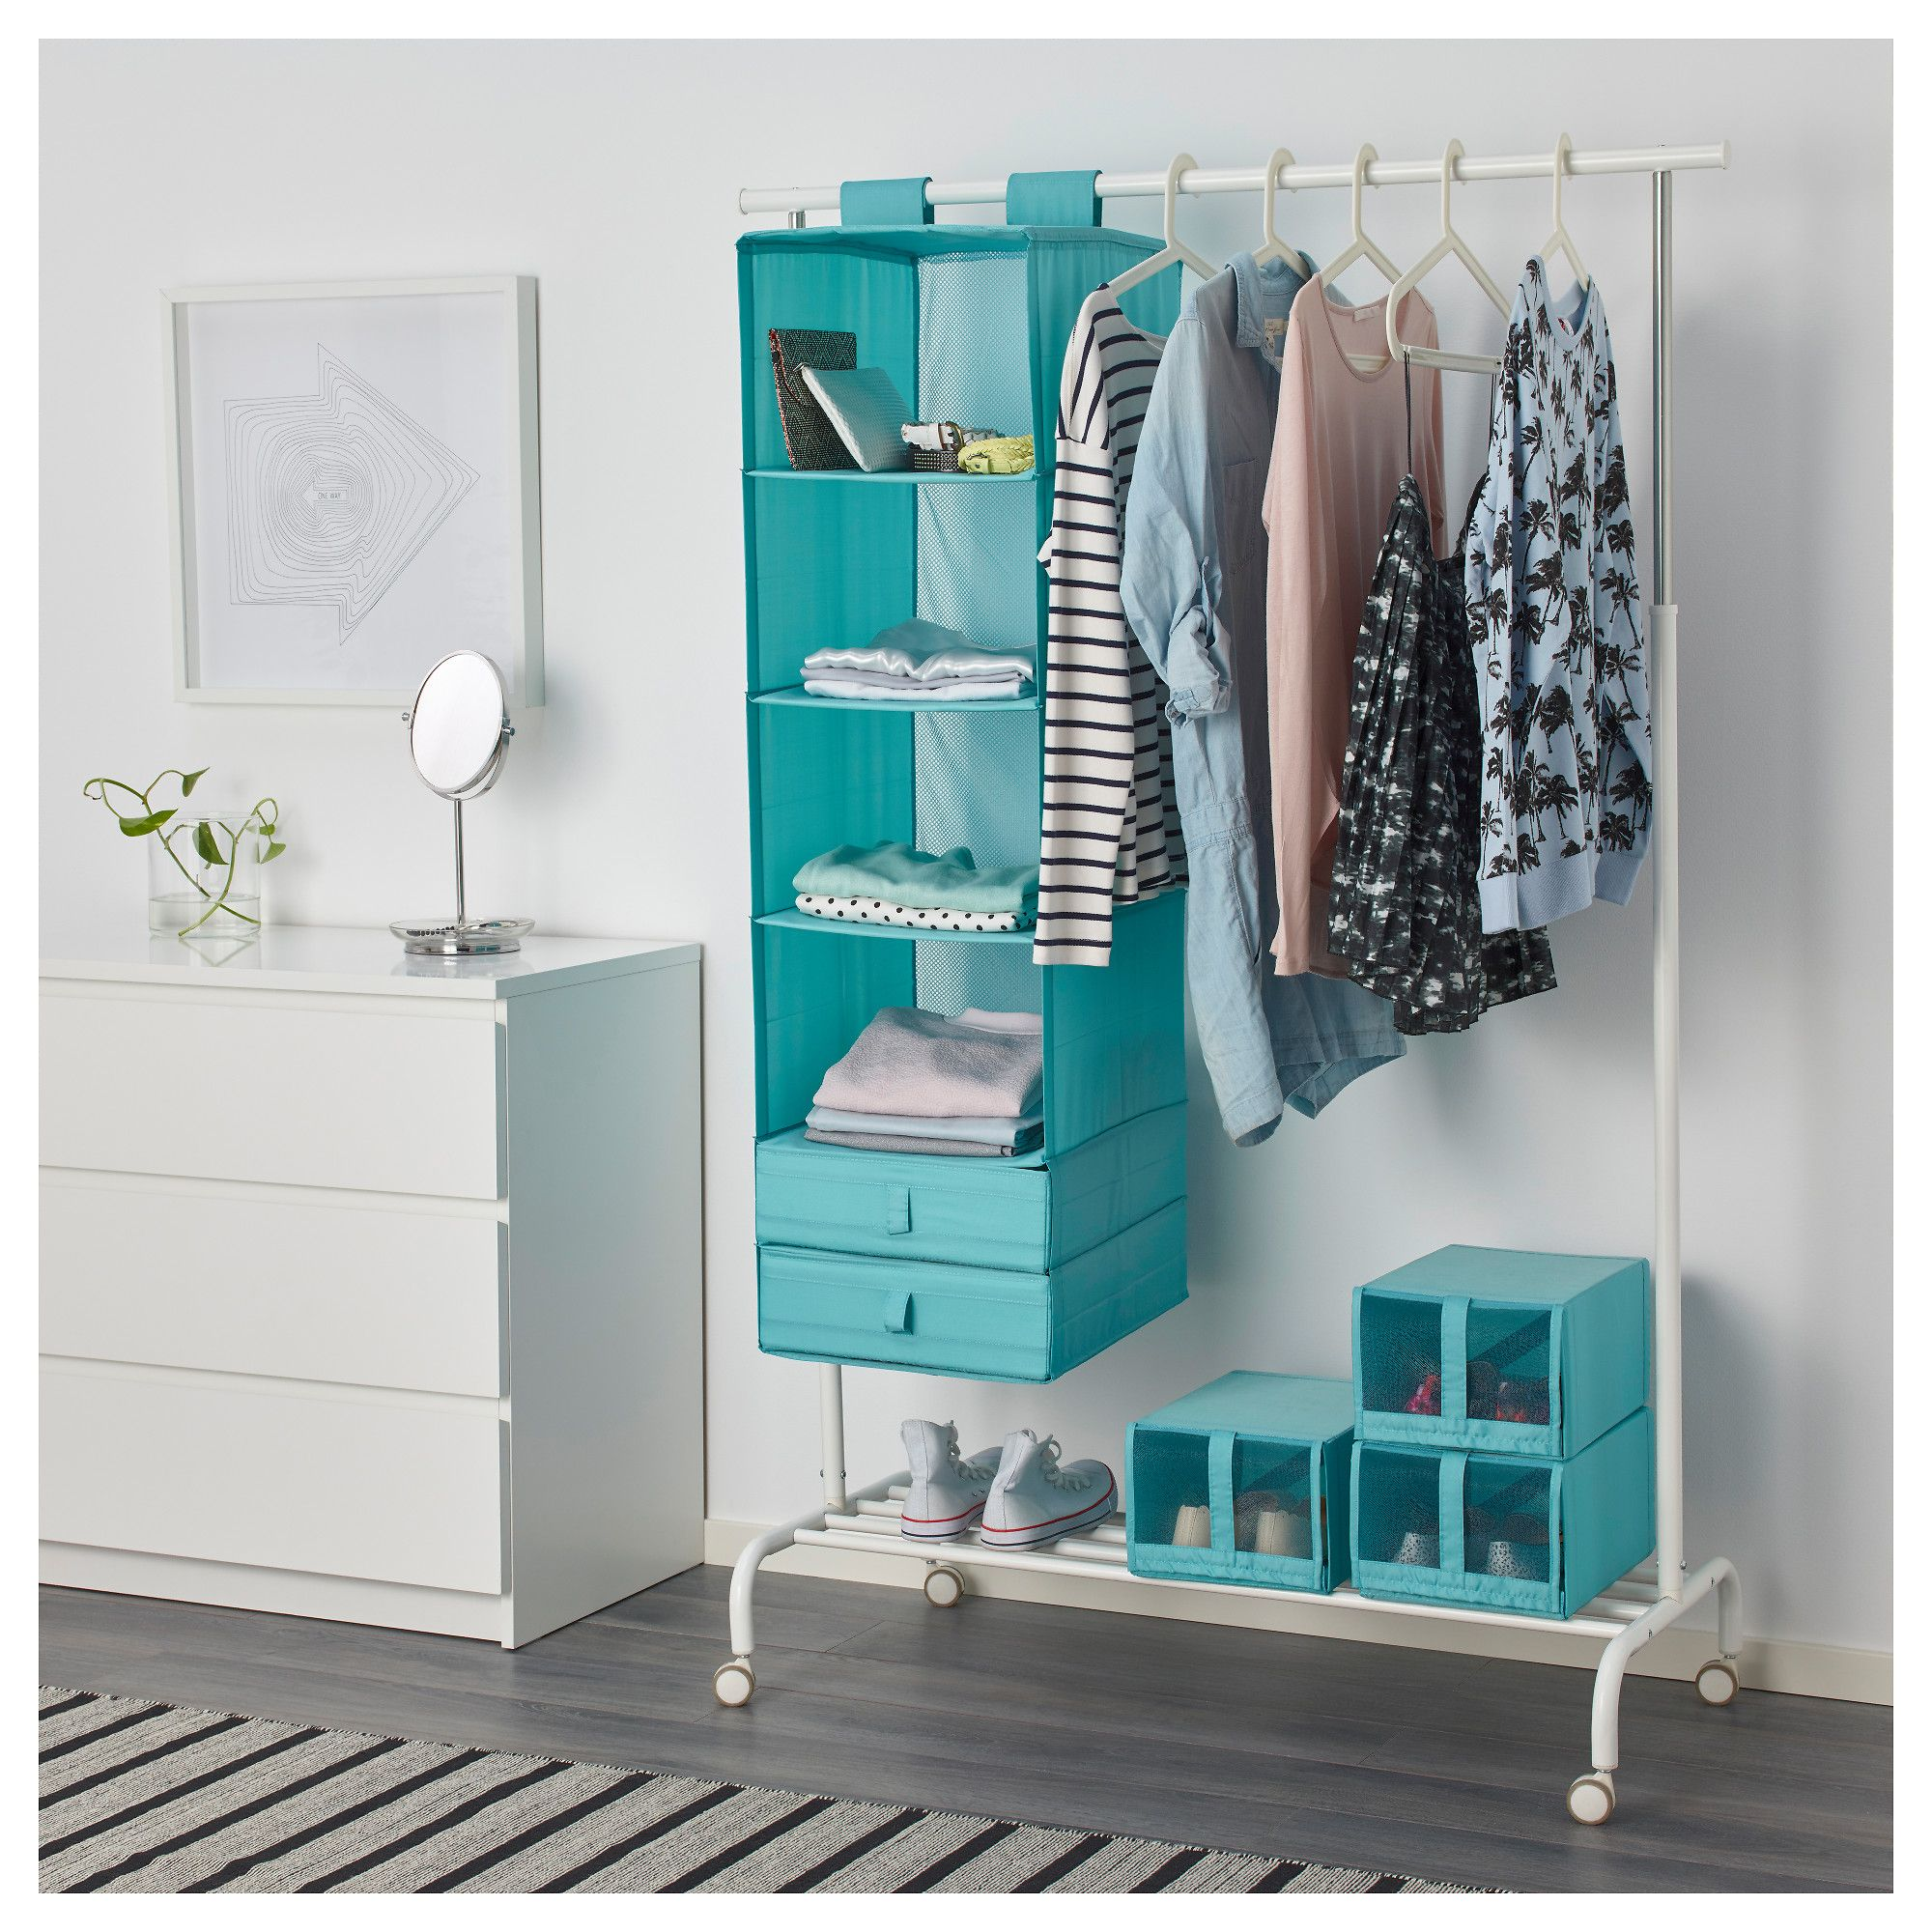 Virtual Dorm Room Design: SKUBB Organizer With 6 Compartments Light Blue